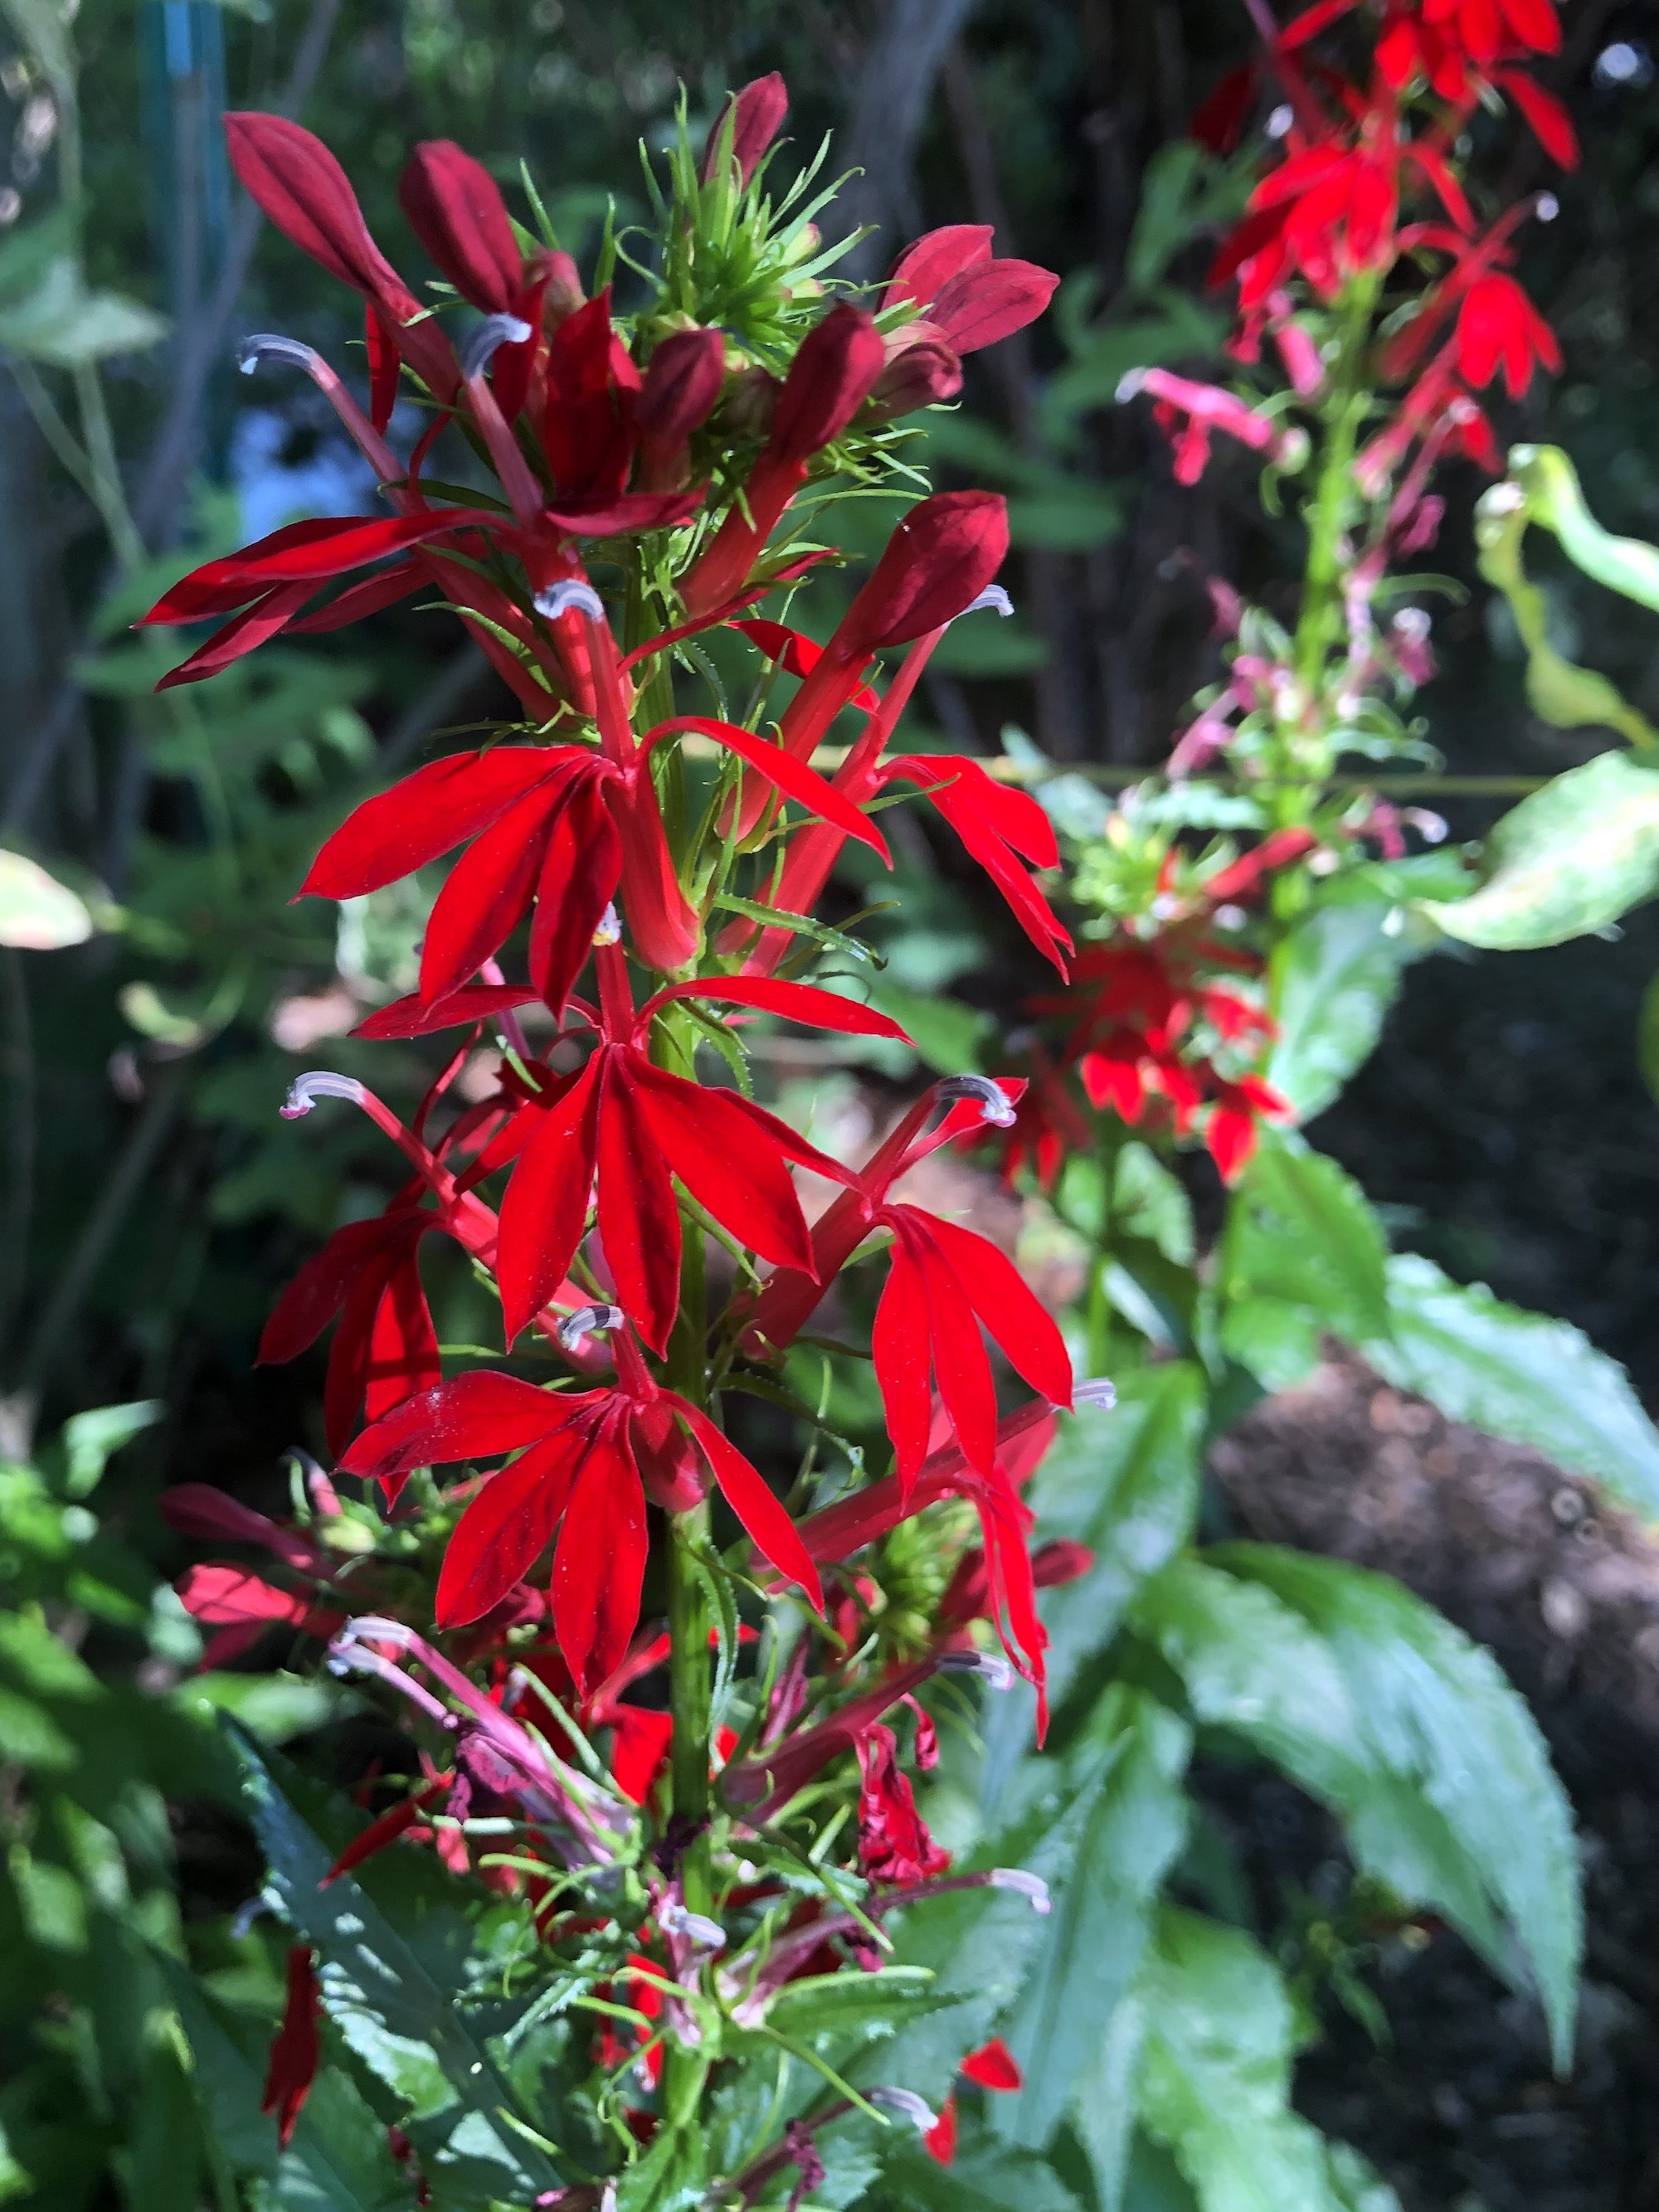 Cardinal Flower in a Nakoma garden in Madison, Wisconsin on July 24, 2020.